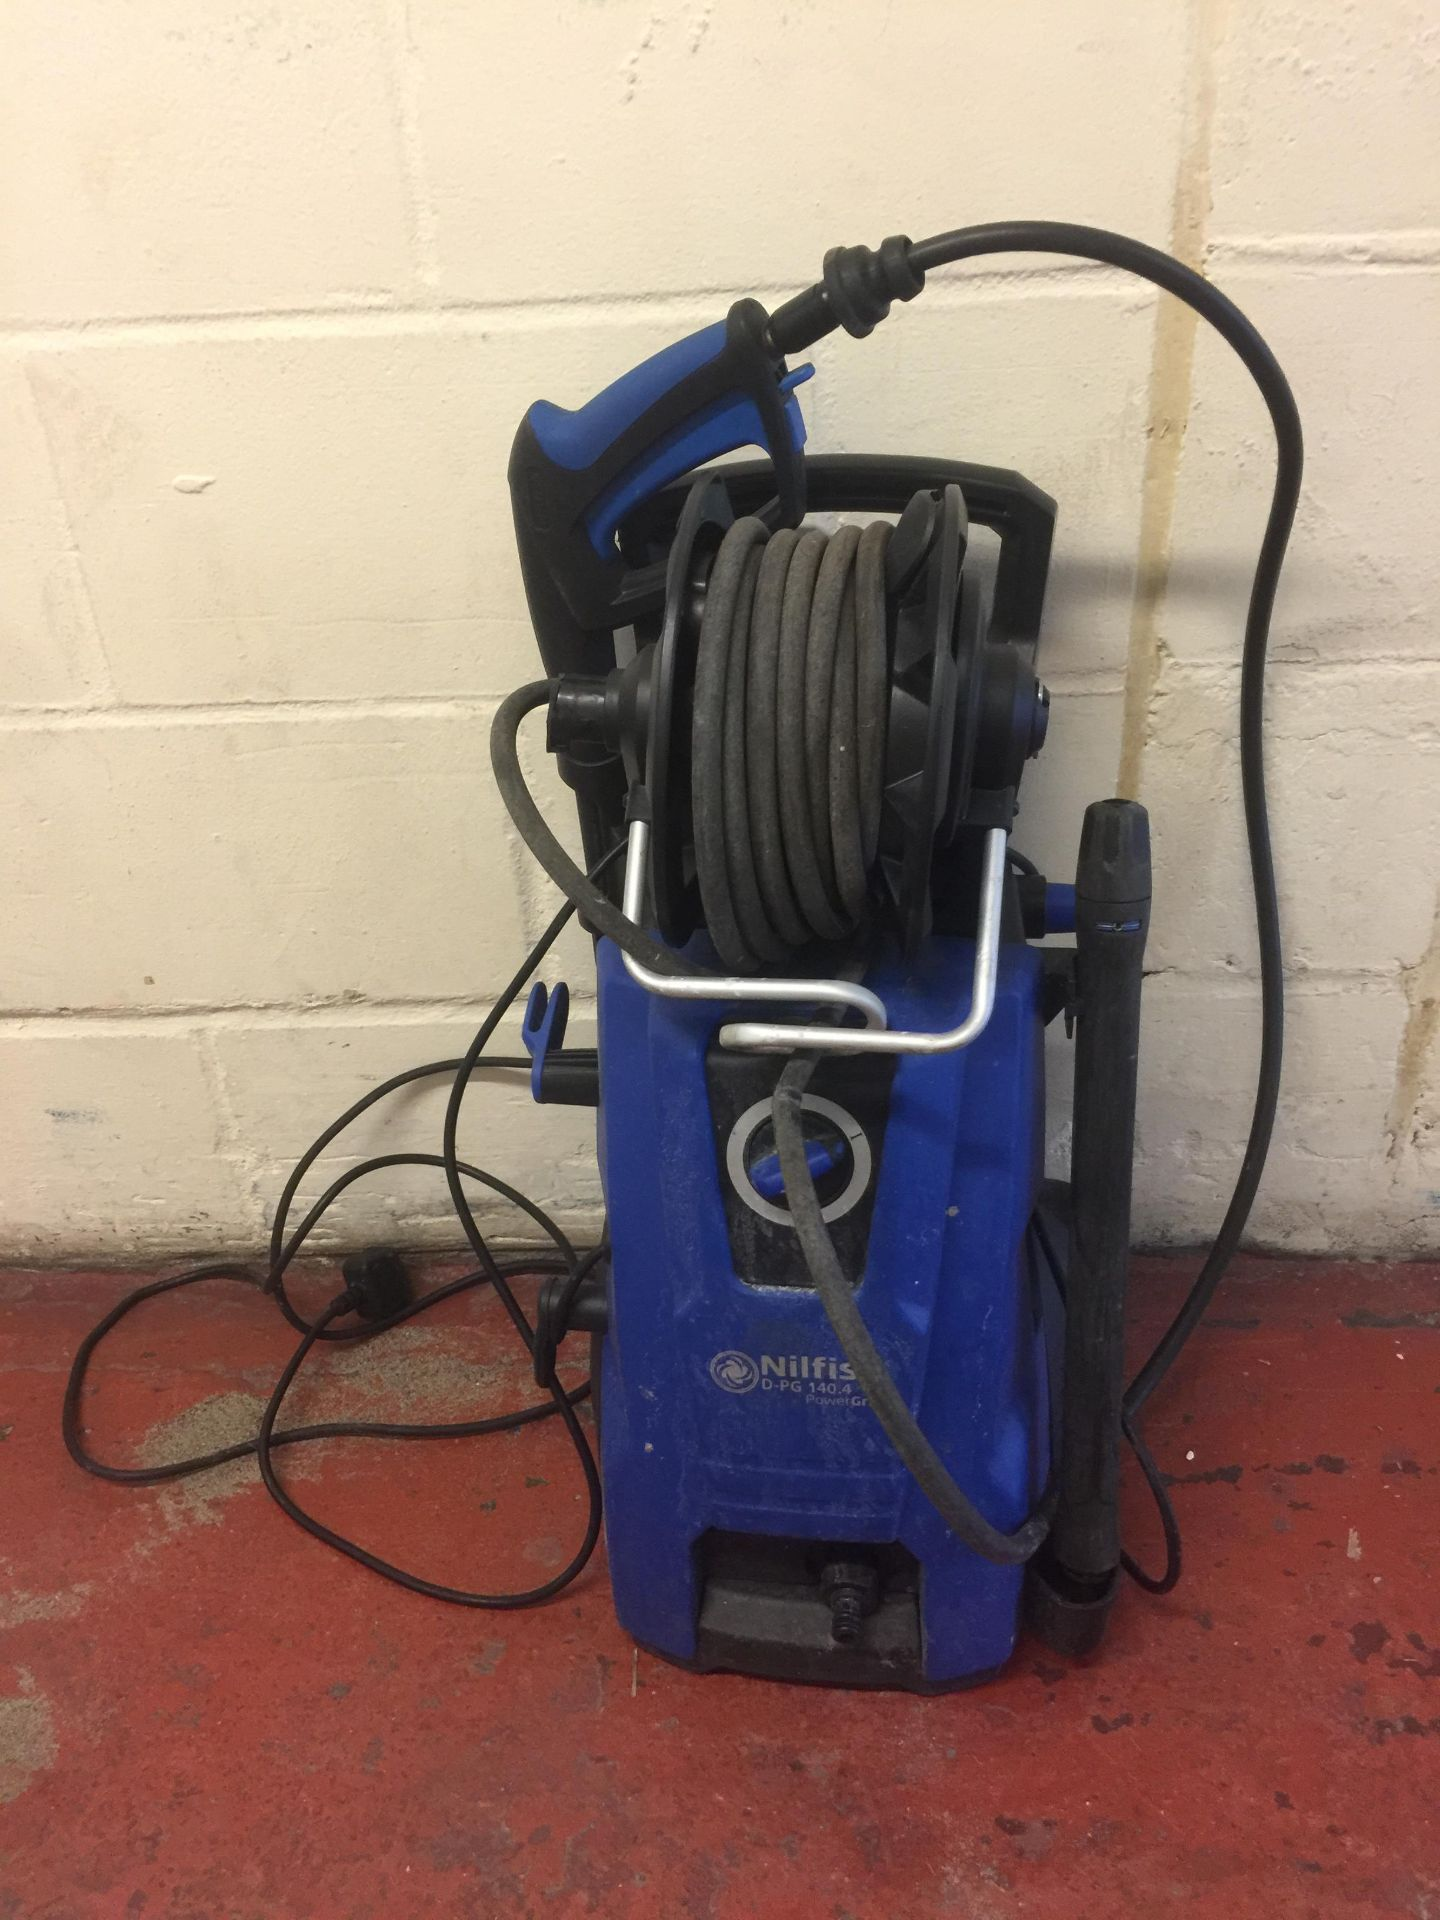 Lot 25 - Nilfisk D-PG 140.4 Pressure Washer with PowerGrip control RRP £250